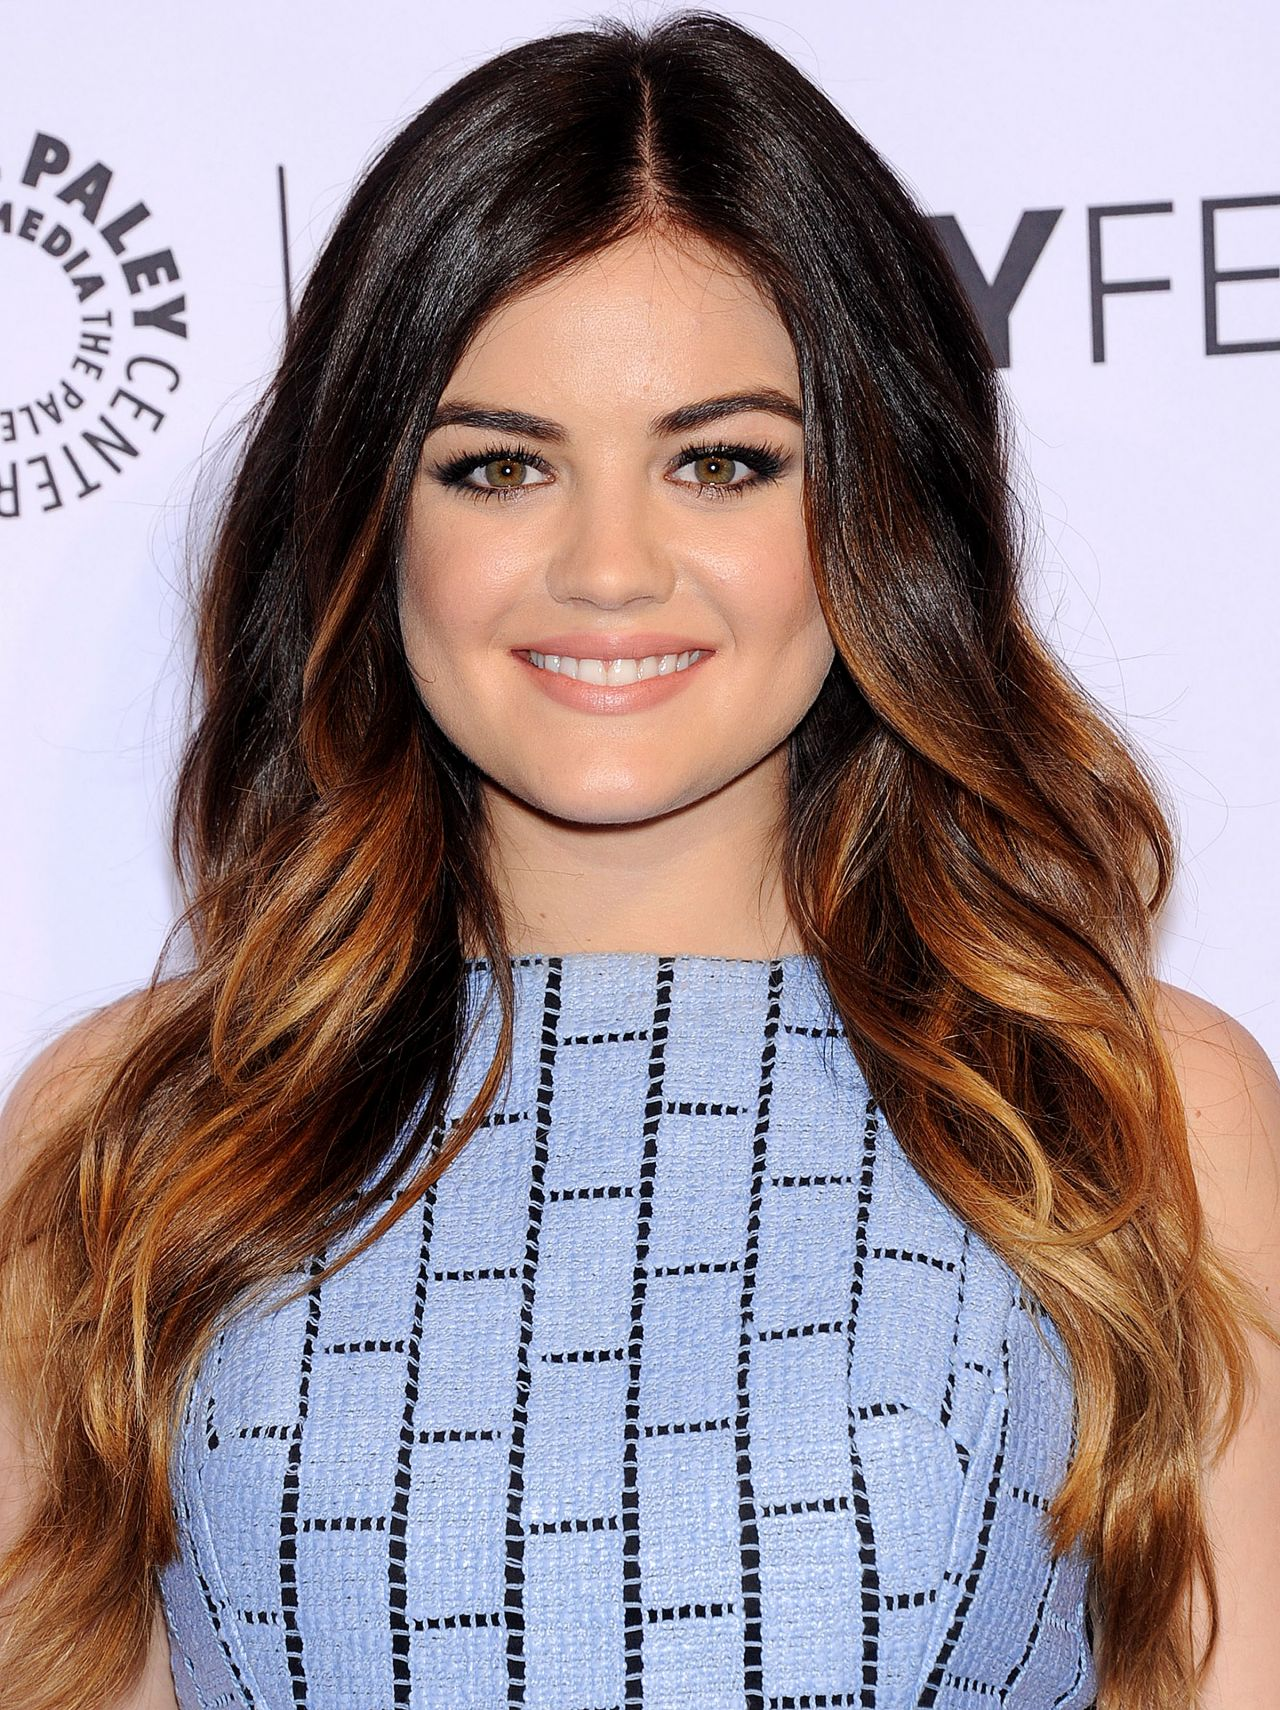 Lucy Hale In Tibi Pretty Little Liars At Paleyfest 2014